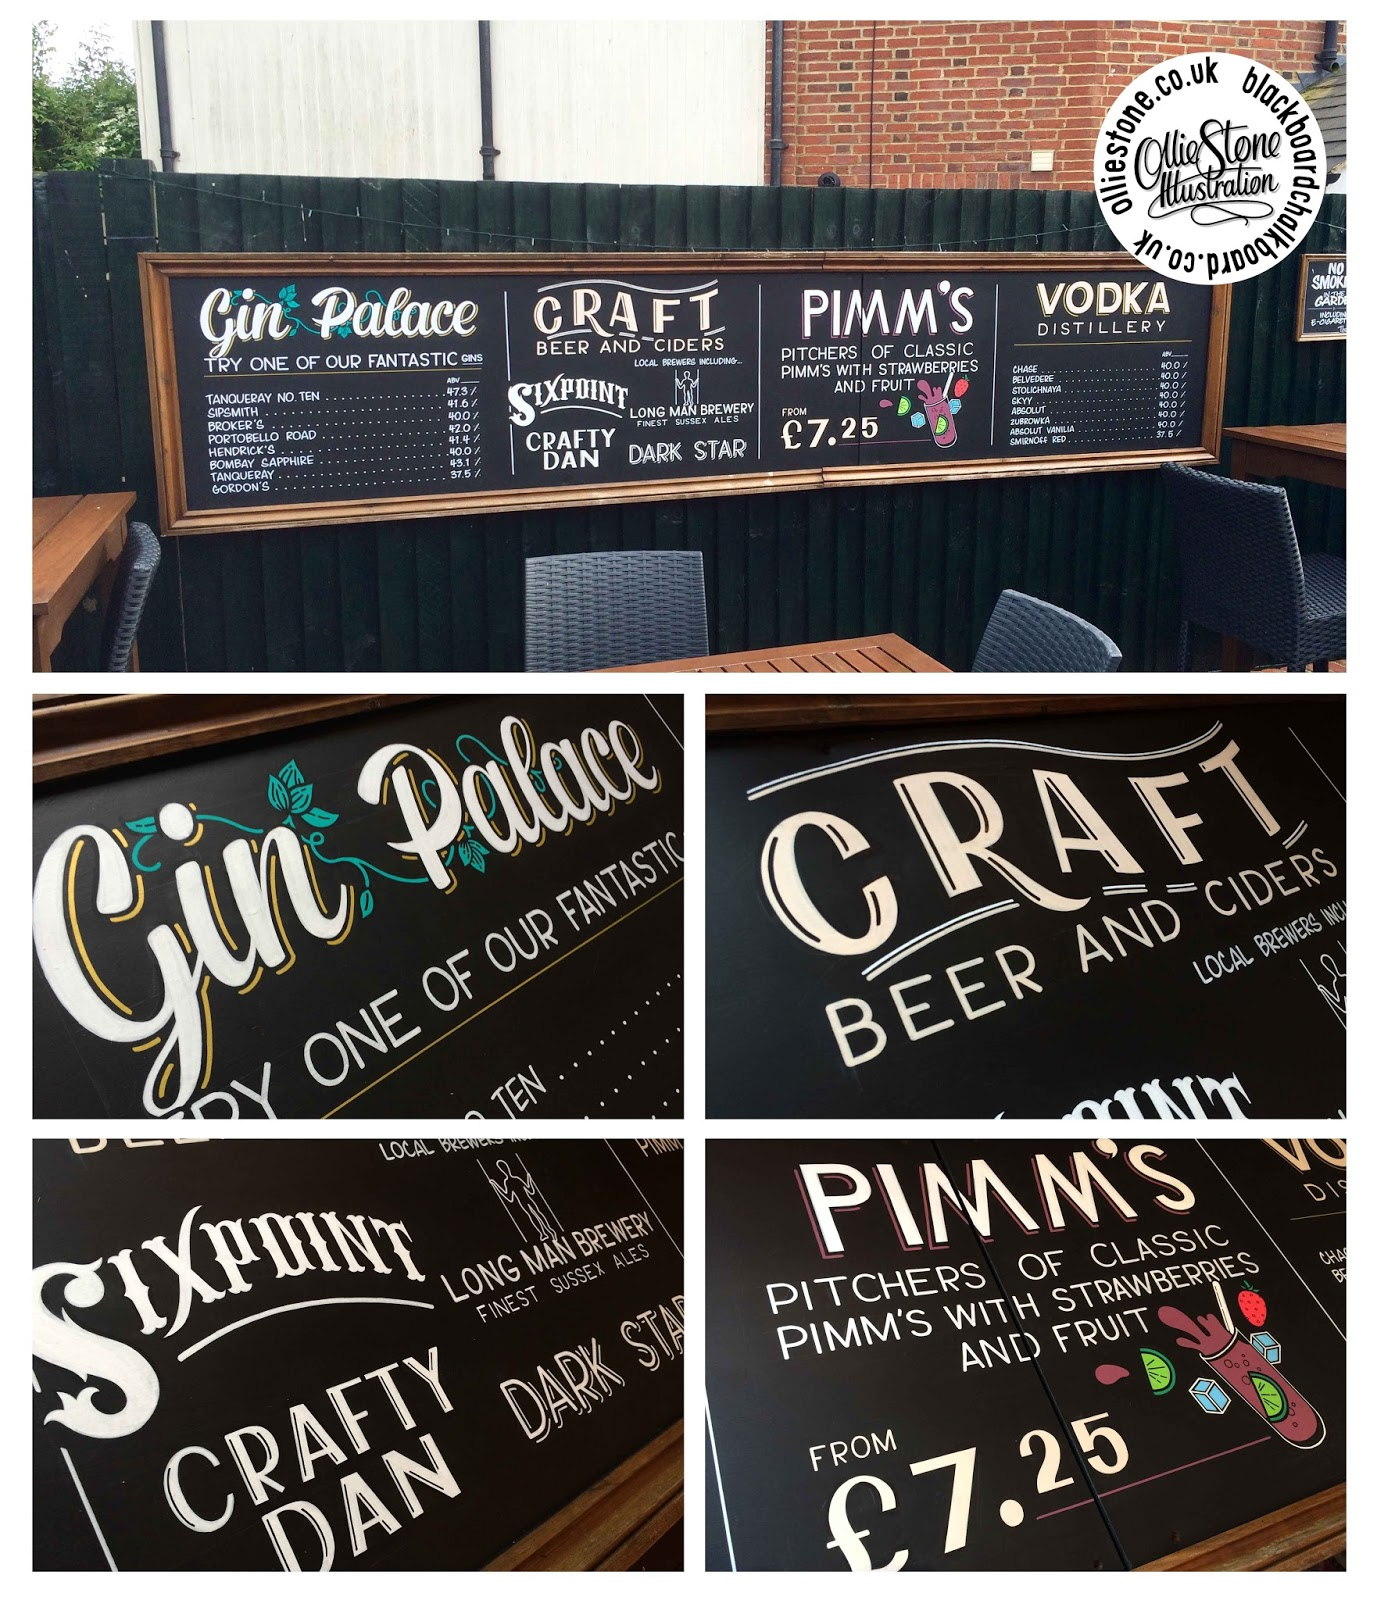 Double Sided Pavement Blackboard For Essex Hog King In Maldon. Large Outdoor  ...